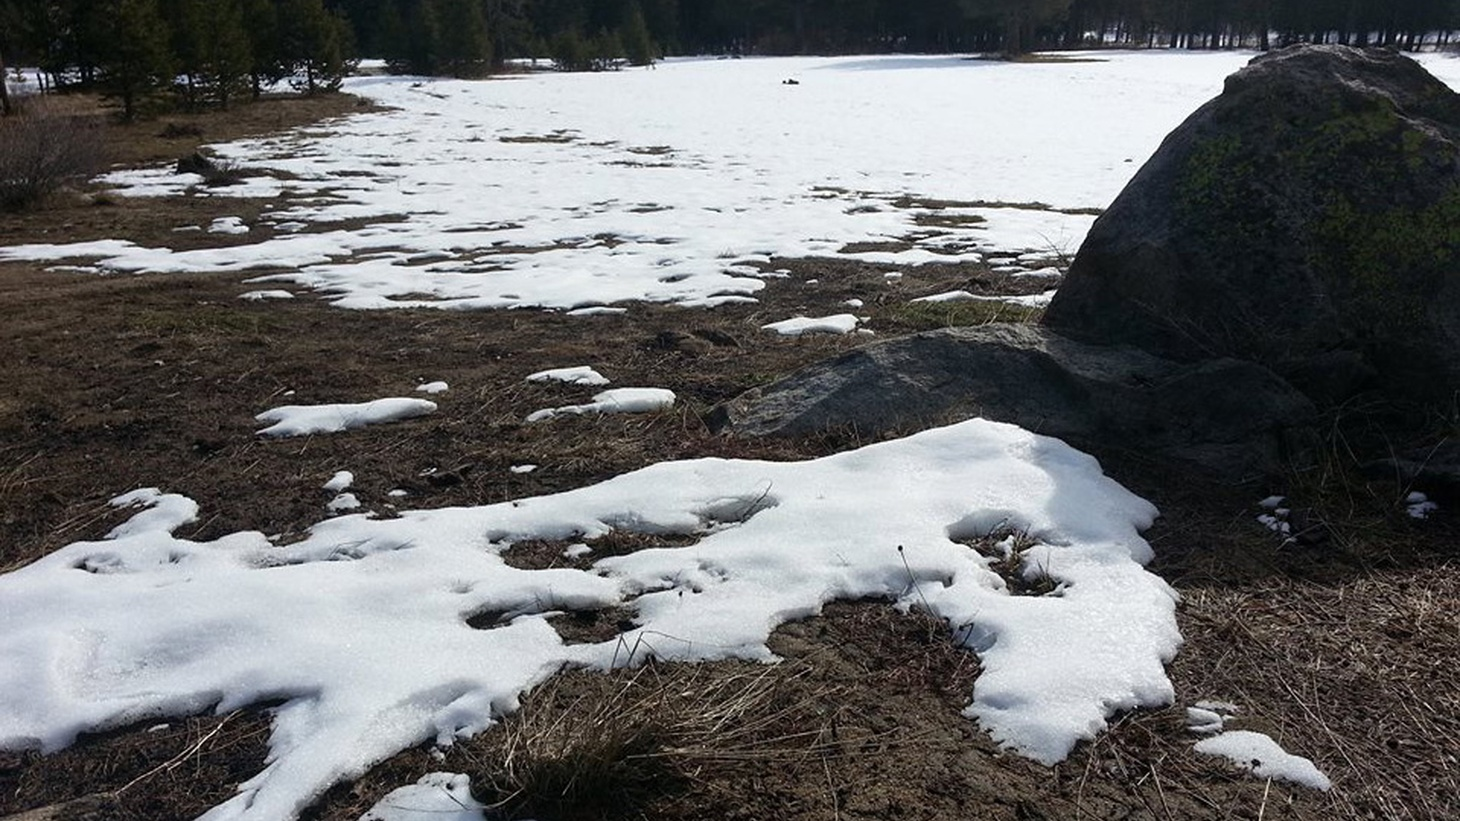 Mammoth and Lake Tahoe have been hurting for three years because of the drought. Climate change means late winters, early springs and mountain slopes that used to be covered with white powder still brown under rising snowlines. Does snow itself have a future?